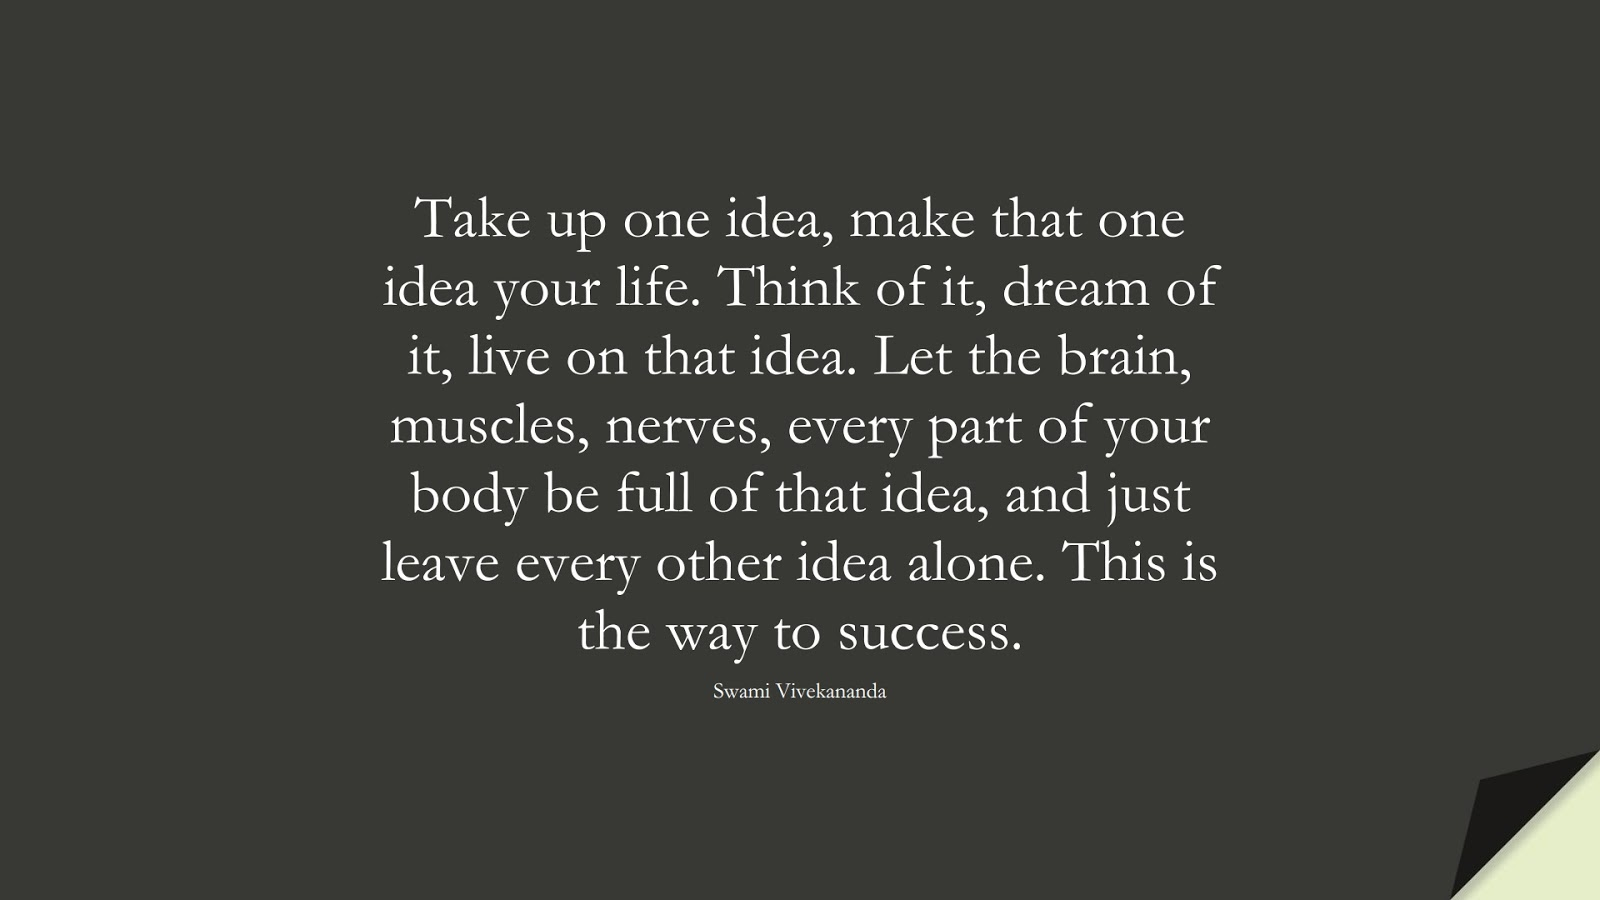 Take up one idea, make that one idea your life. Think of it, dream of it, live on that idea. Let the brain, muscles, nerves, every part of your body be full of that idea, and just leave every other idea alone. This is the way to success. (Swami Vivekananda);  #HardWorkQuotes